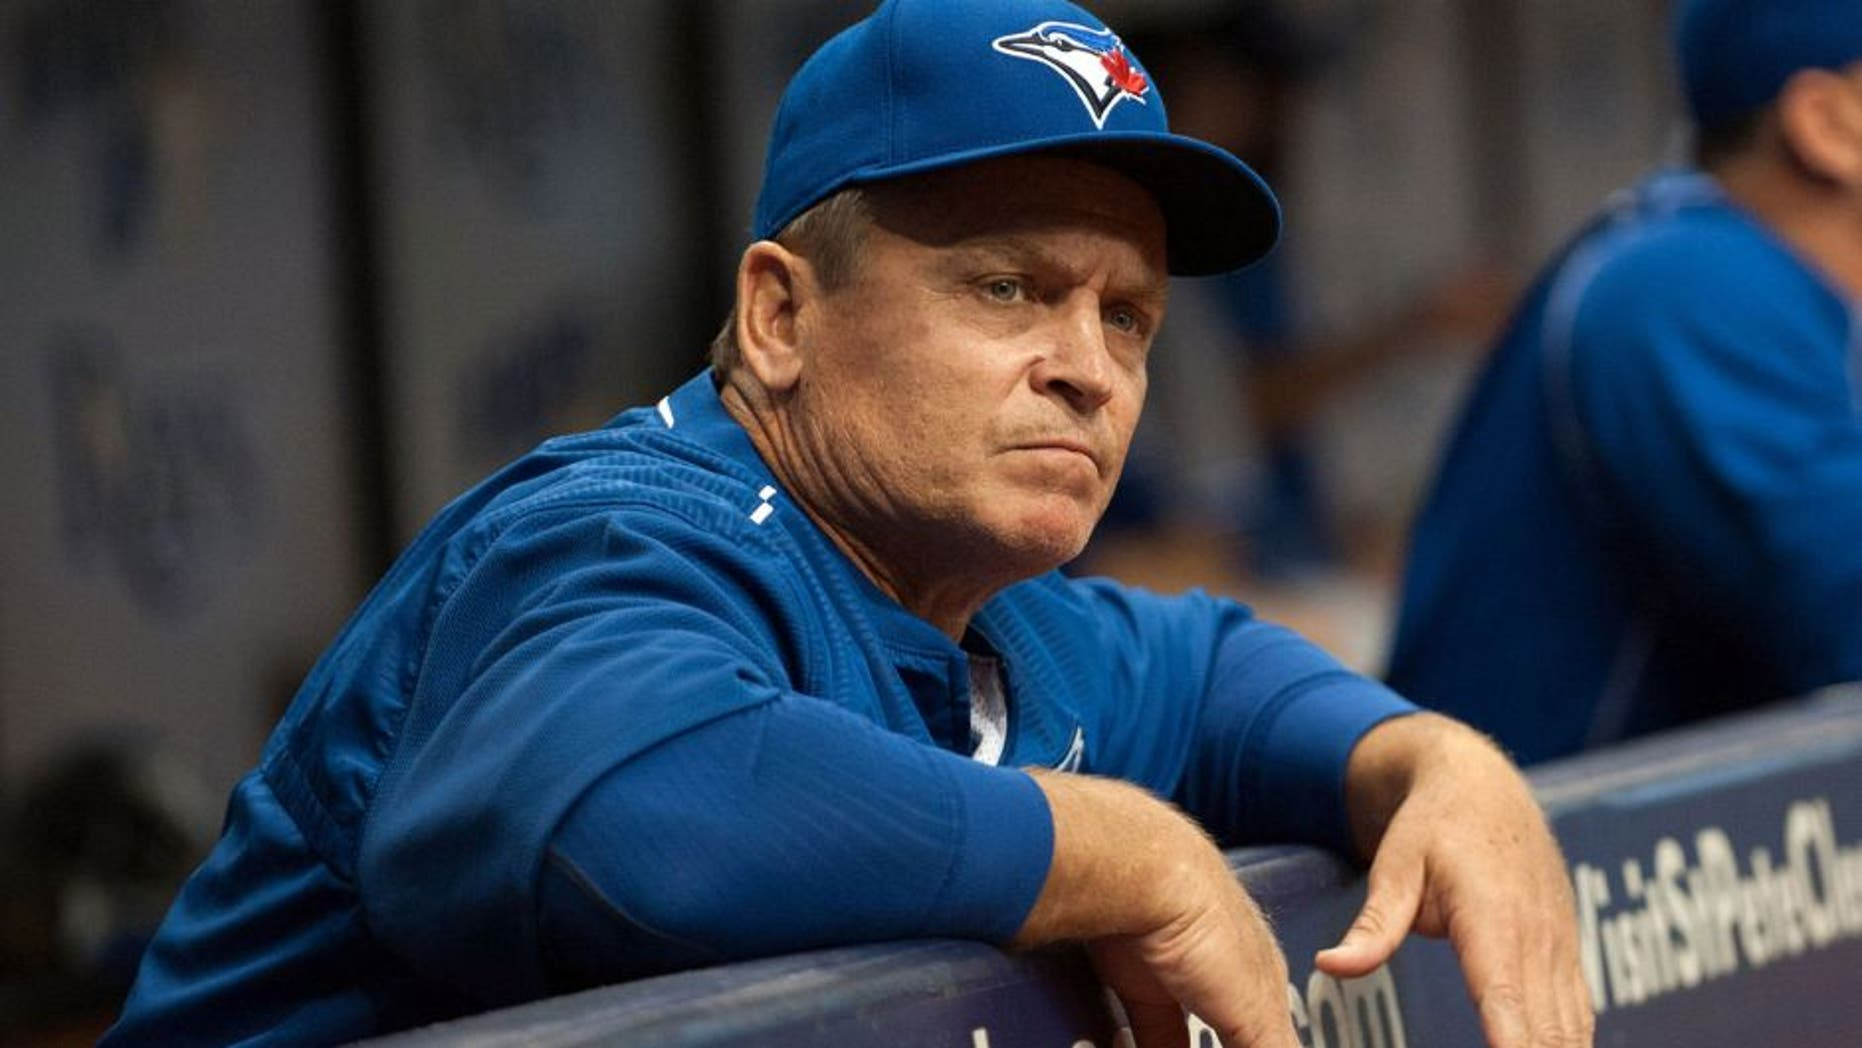 Apr 25, 2015; St. Petersburg, FL, USA; Toronto Blue Jays manager John Gibbons (5) in the dugout during the first inning against the Tampa Bay Rays at Tropicana Field. Mandatory Credit: Jeff Griffith-USA TODAY Sports